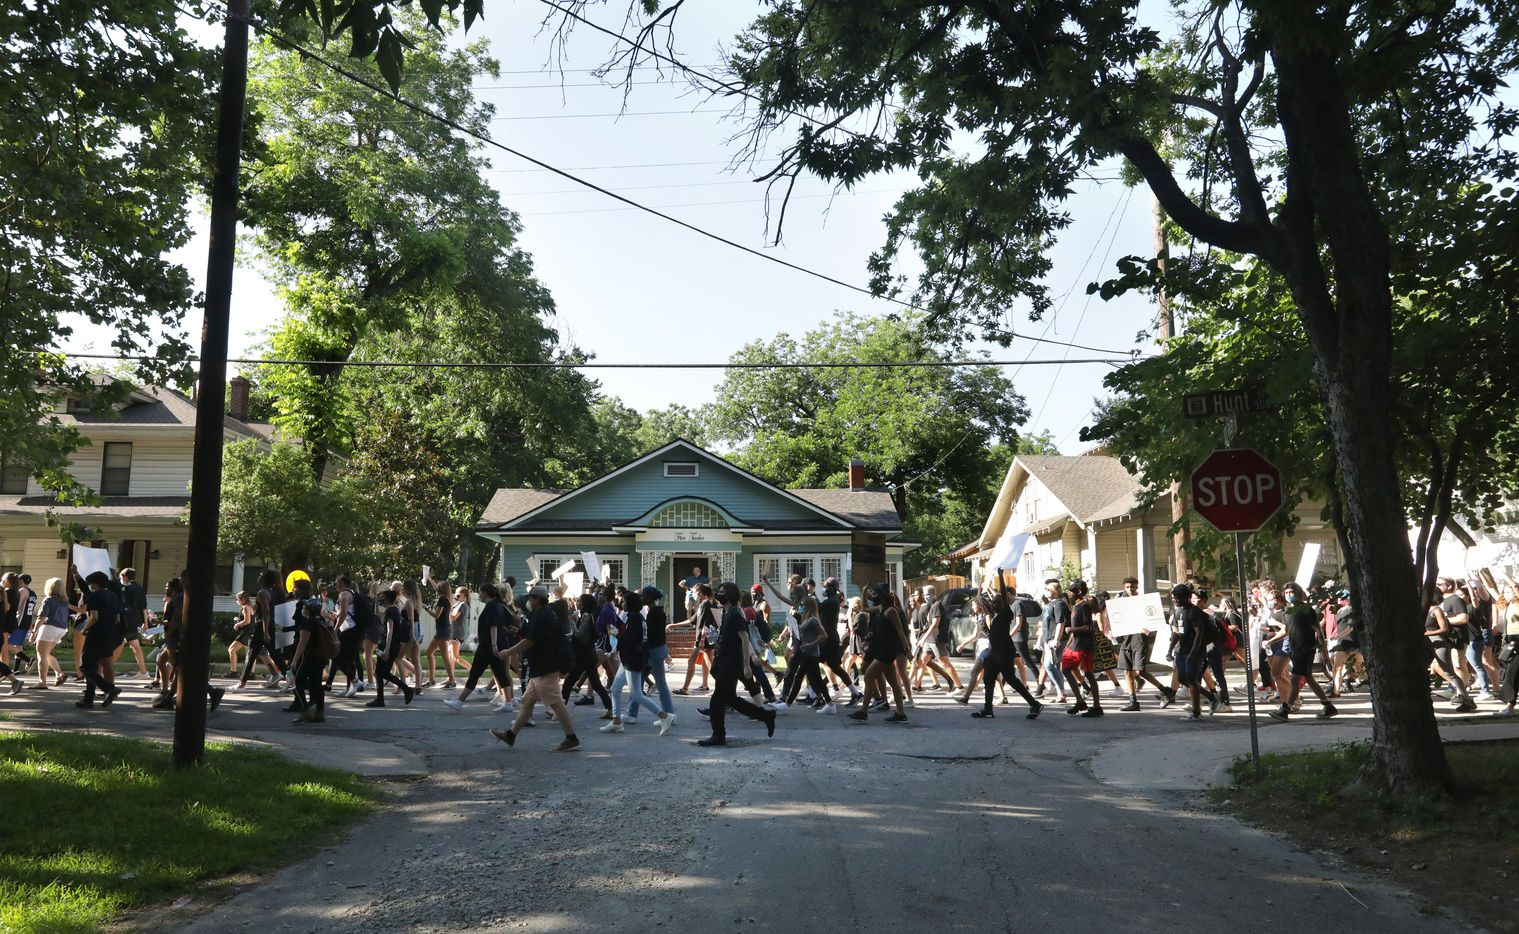 Protestors march from the historic town square back to Ron Poe Stadium in McKinney, TX, on Jun. 5, 2020.